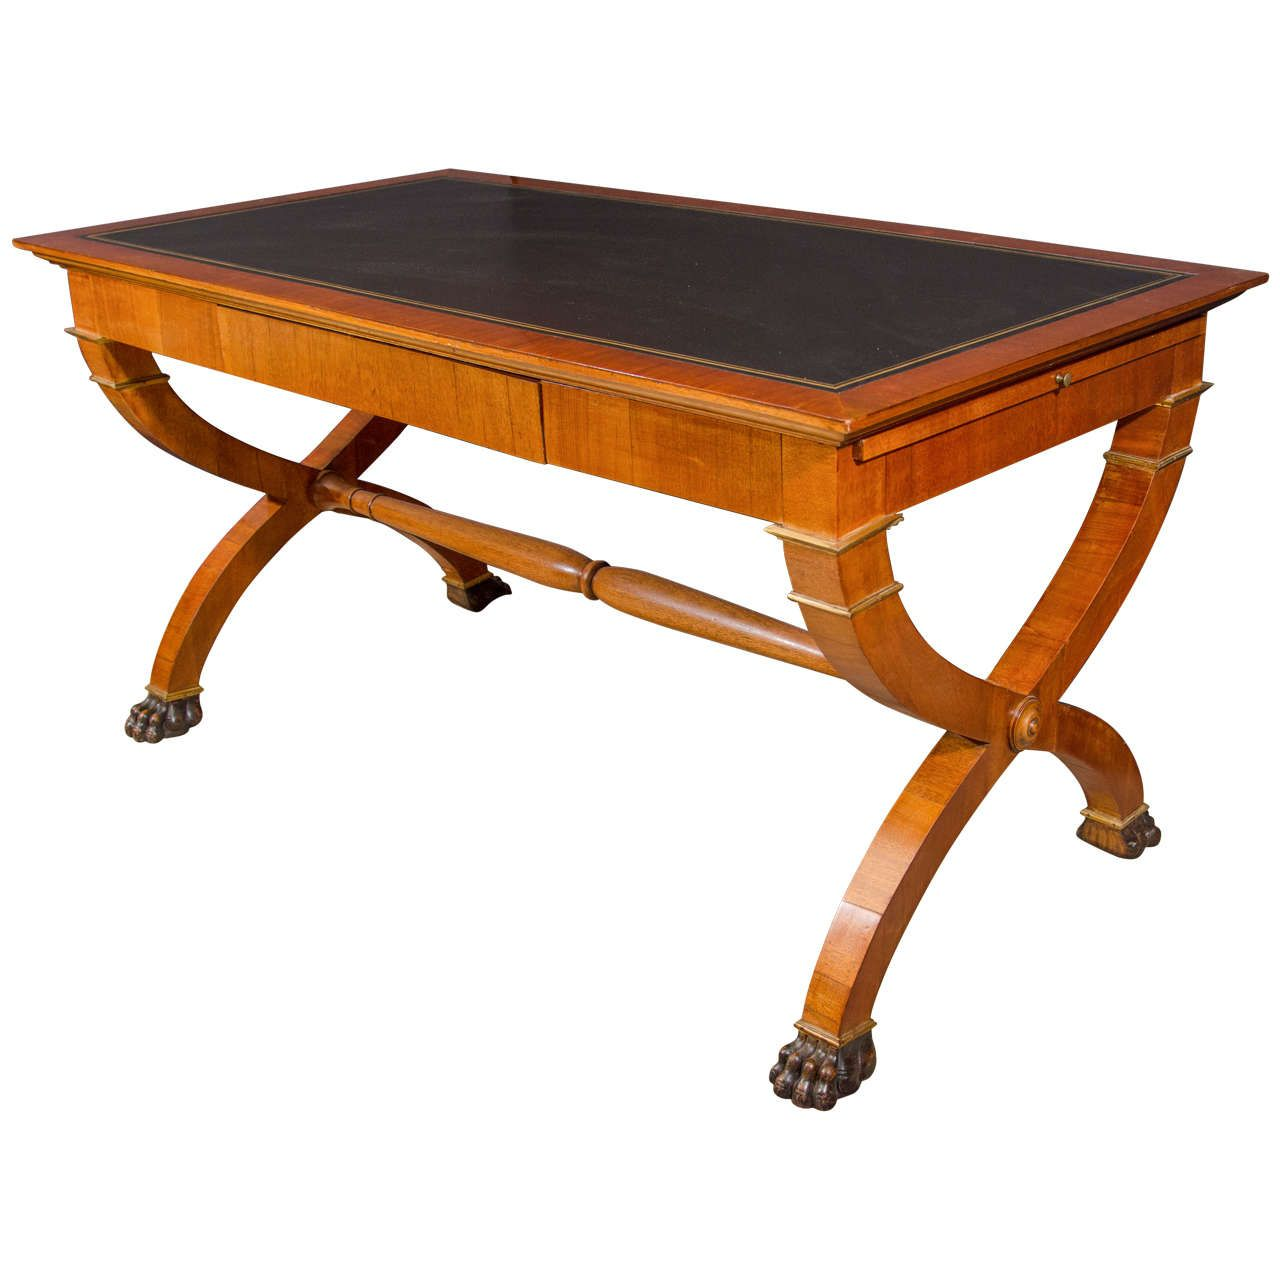 Unusual french empire writing table from a unique collection of view this item and discover similar desks and writing tables for sale at a fine french empire charles x leather top writing table with drawer and two geotapseo Images